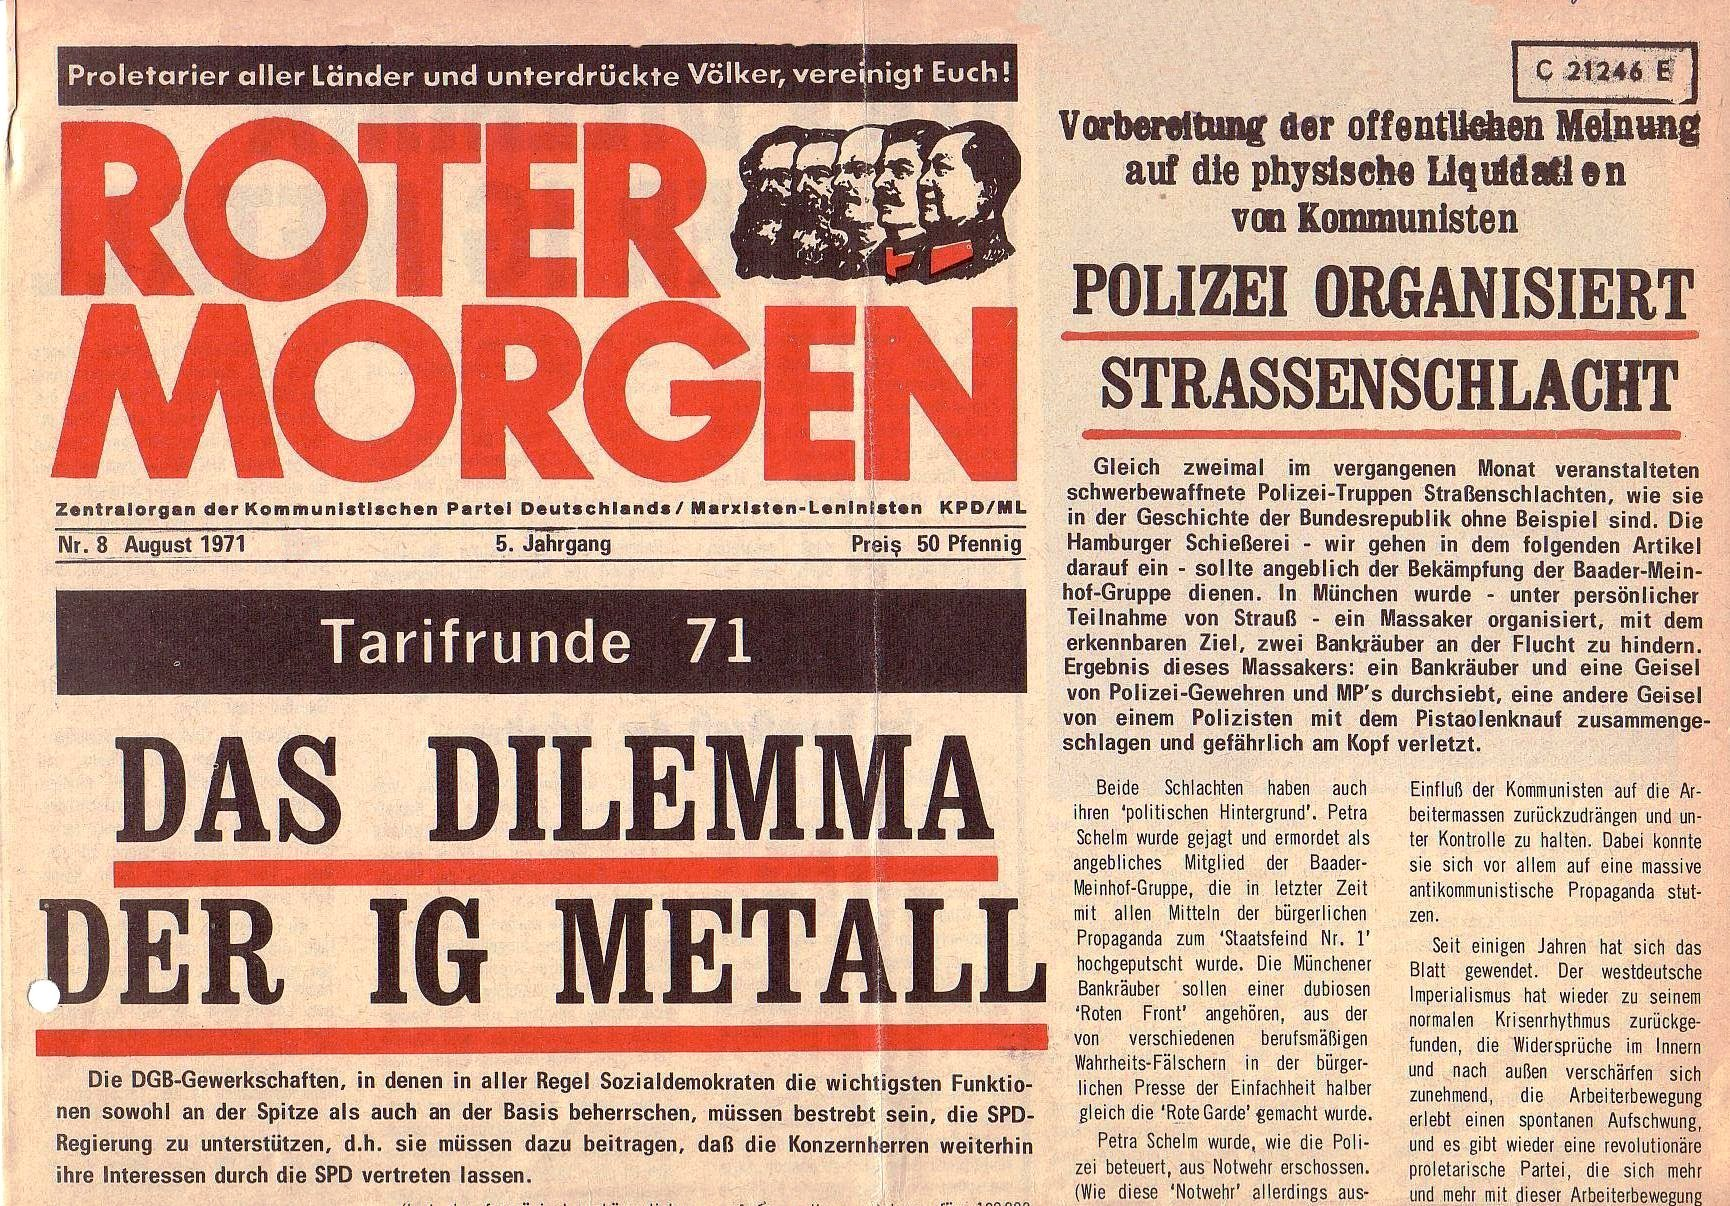 Roter Morgen, 5. Jg., August 1971, Nr. 8, Seite 1a